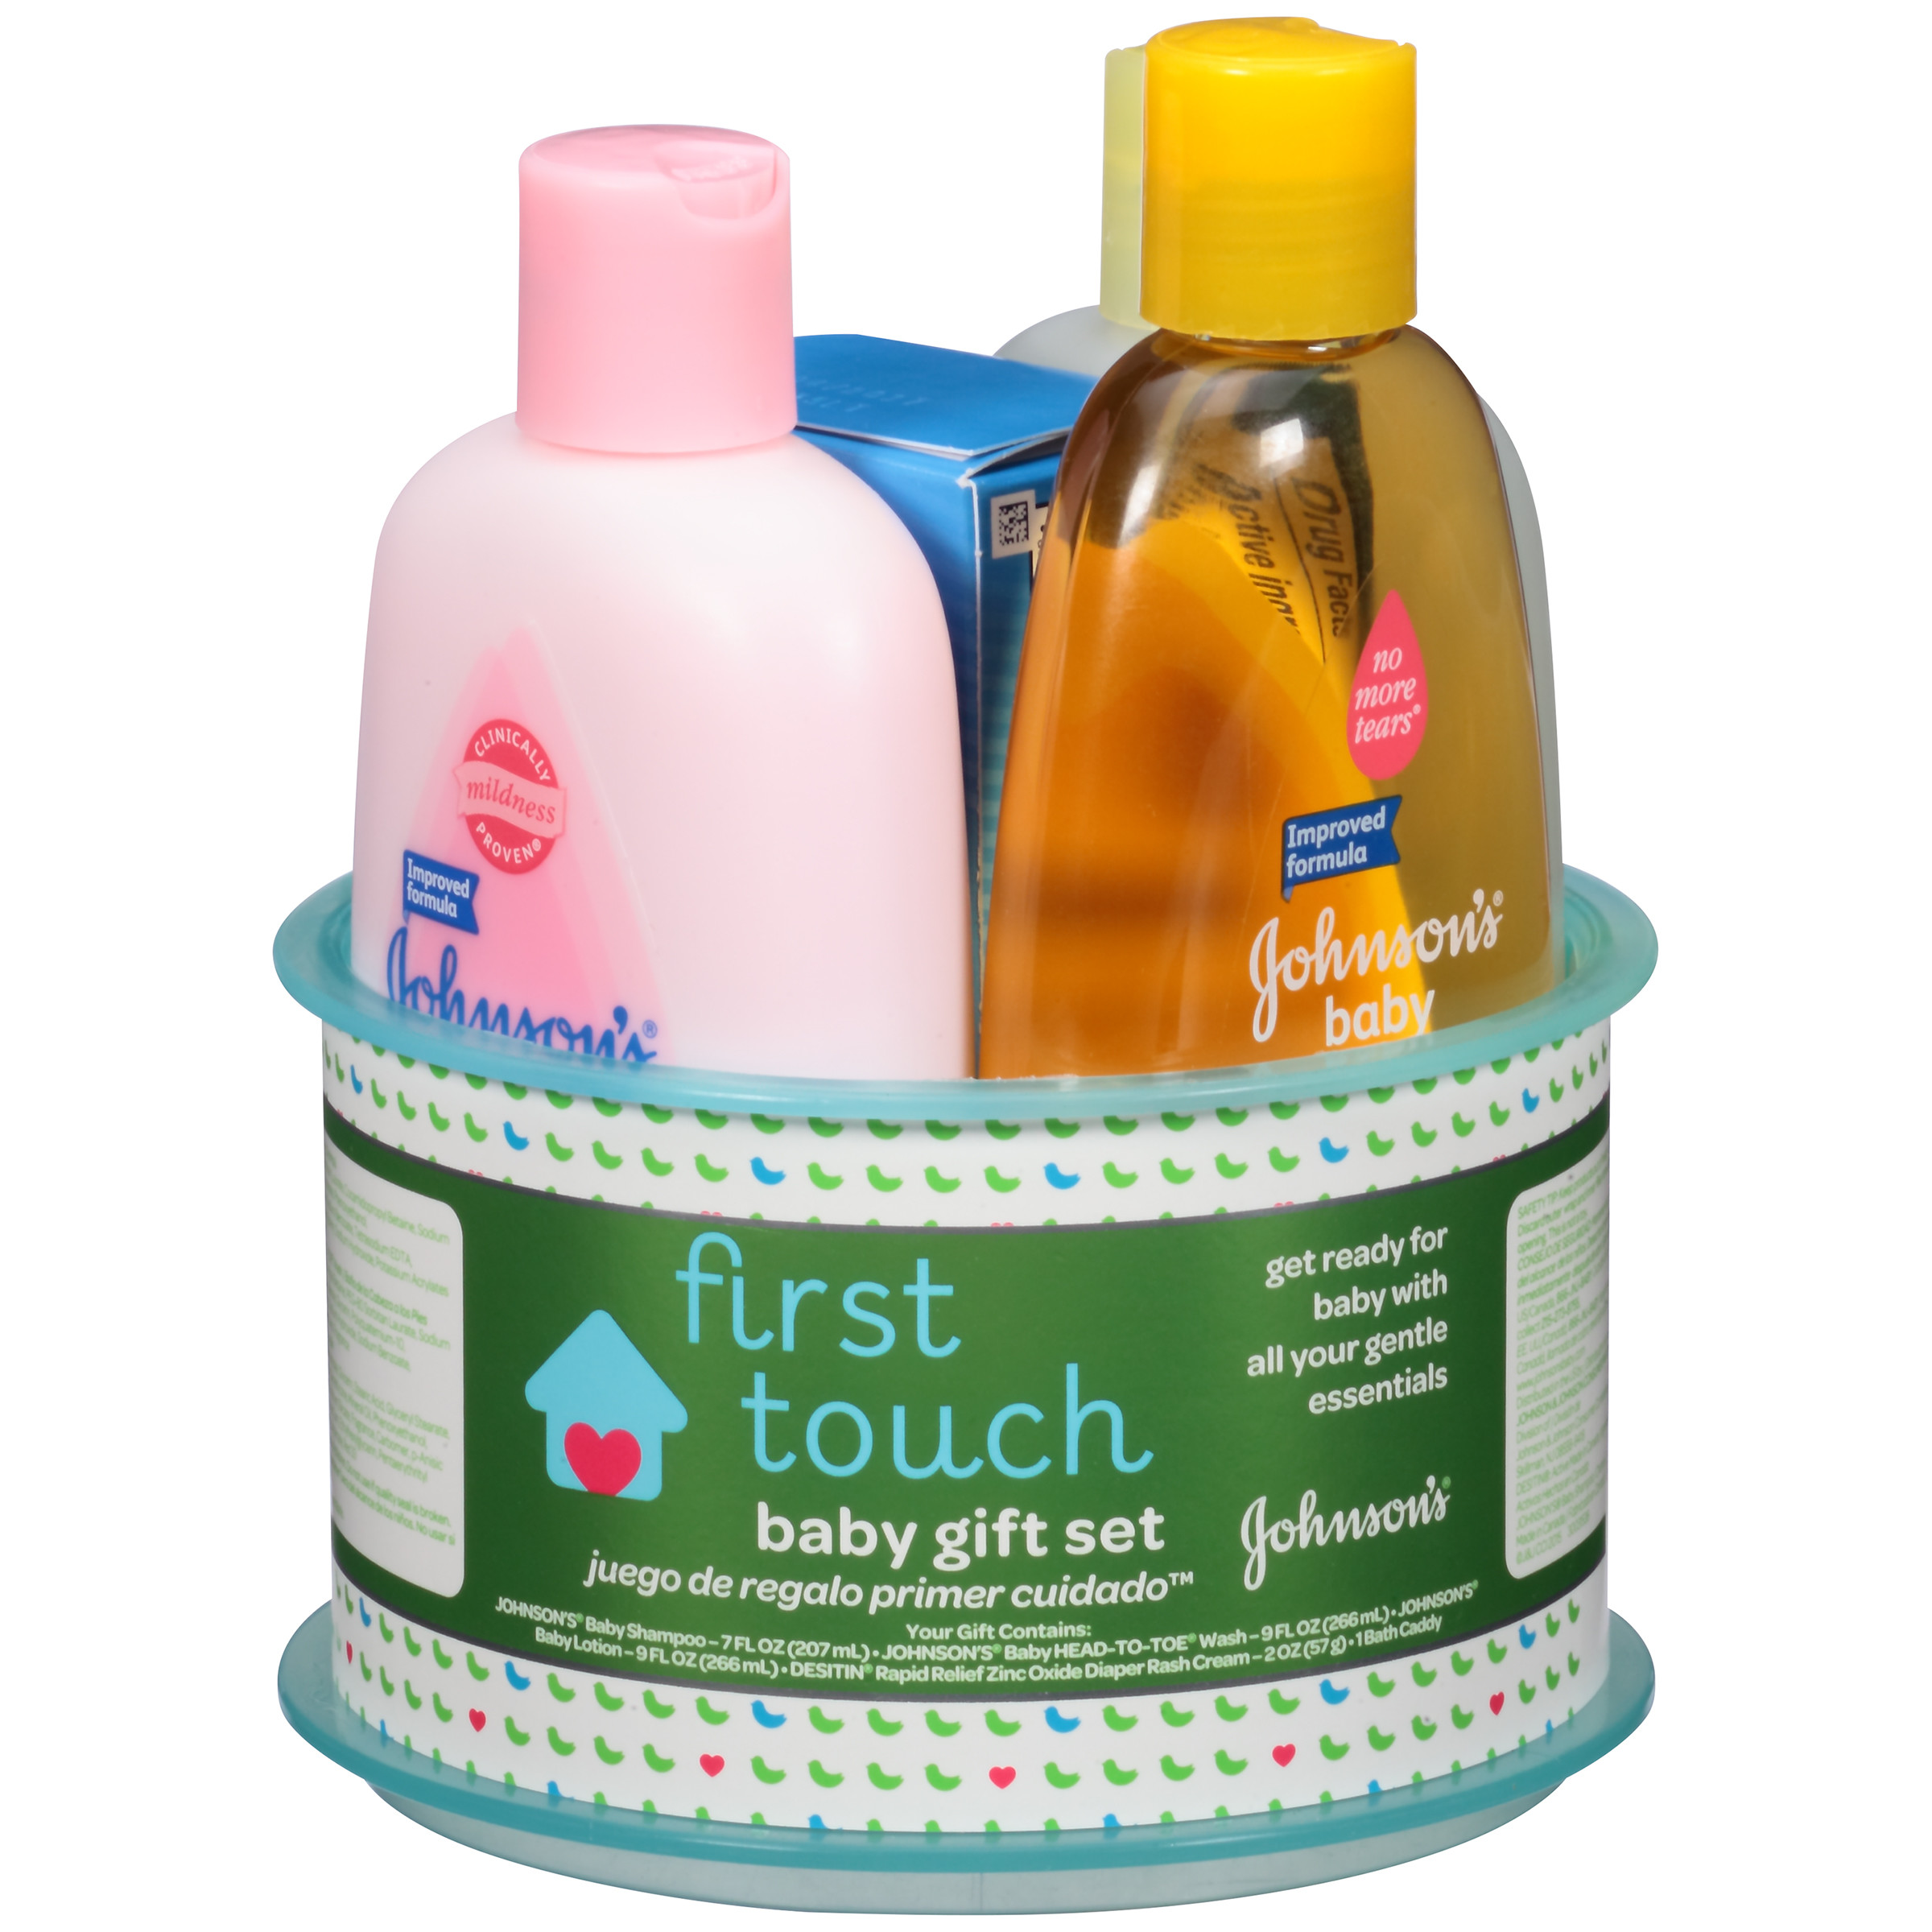 JOHNSON'S First Touch Gift Set, Baby Bath And Baby Skin Care Products, 4 Items